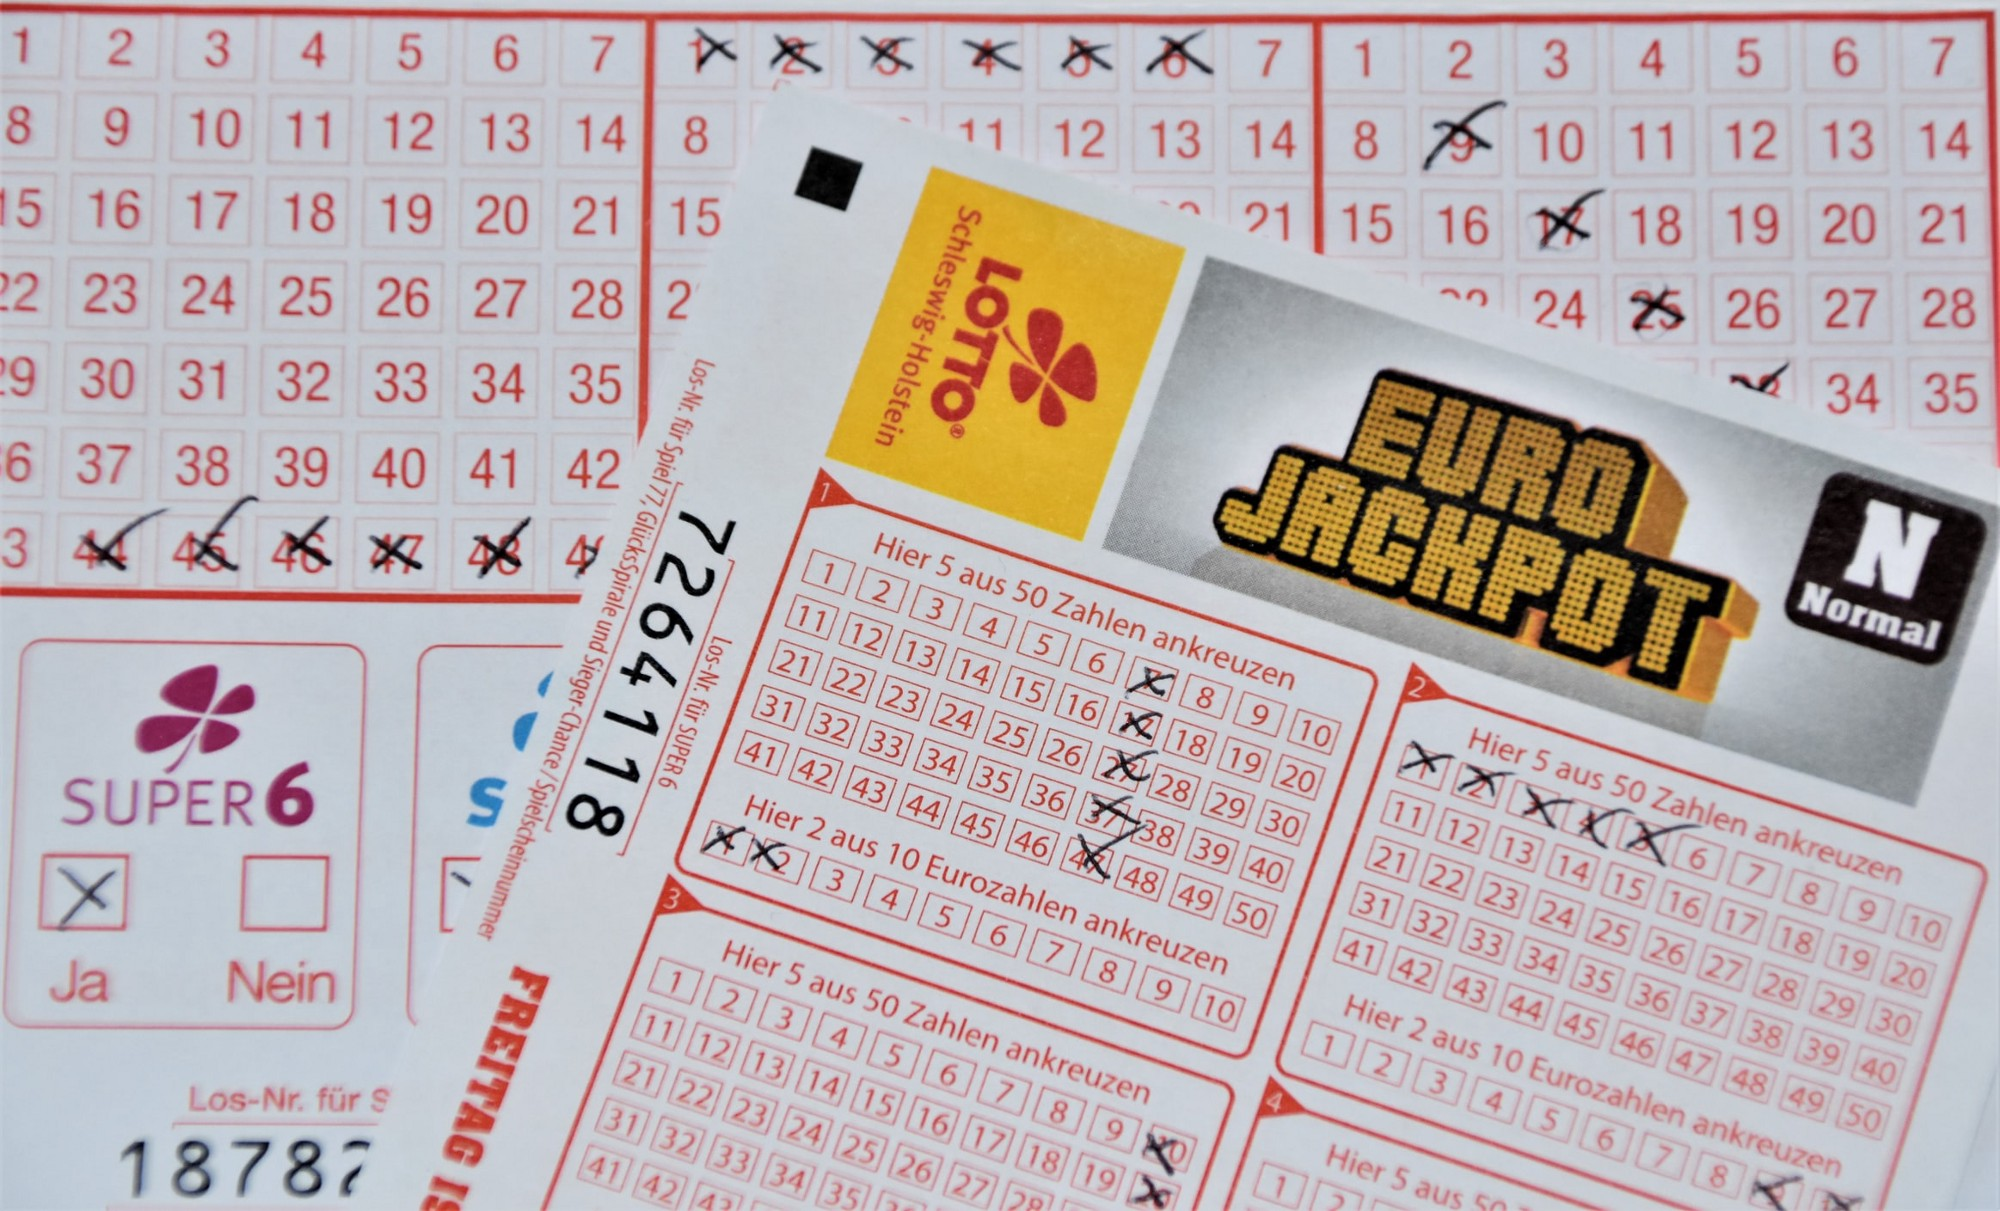 A set of lottery tickets